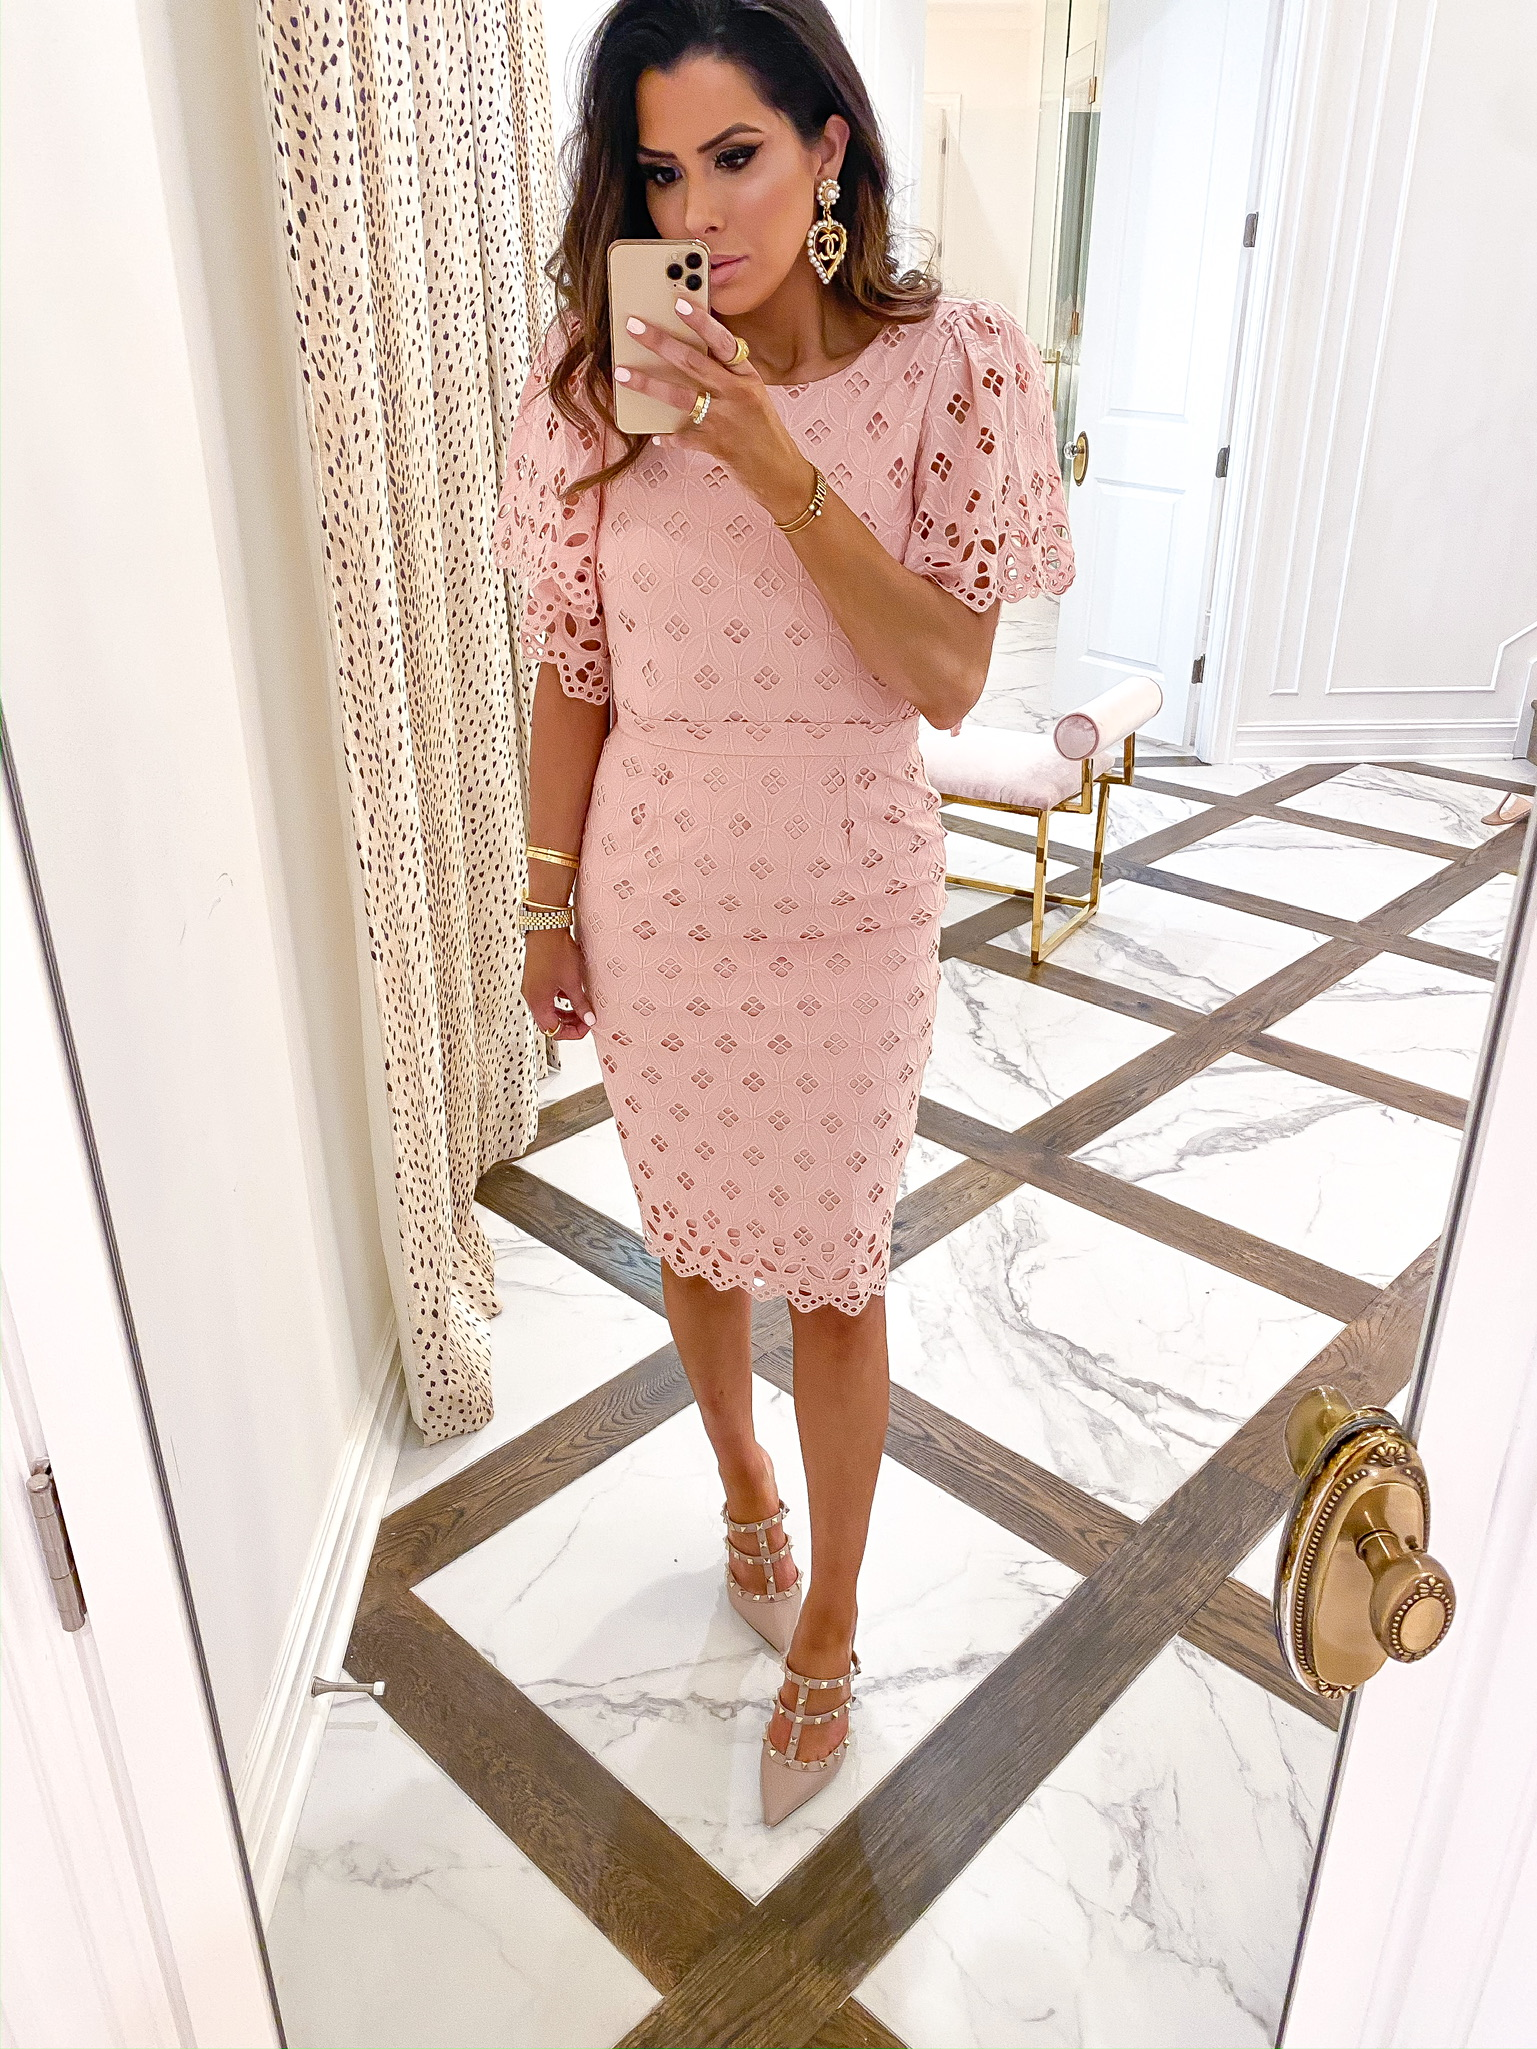 Instagram Fashion by popular US fashion blog, The Sweetest Thing: image of a woman wearing a Nordstrom Eyelet Sheath Dress RACHEL PARCELL, Nordstrom Rockstud T-Strap Pump VALENTINO GARAVANI, Dior and Cartier stacks, Cartier rings, and Chanel earrings.